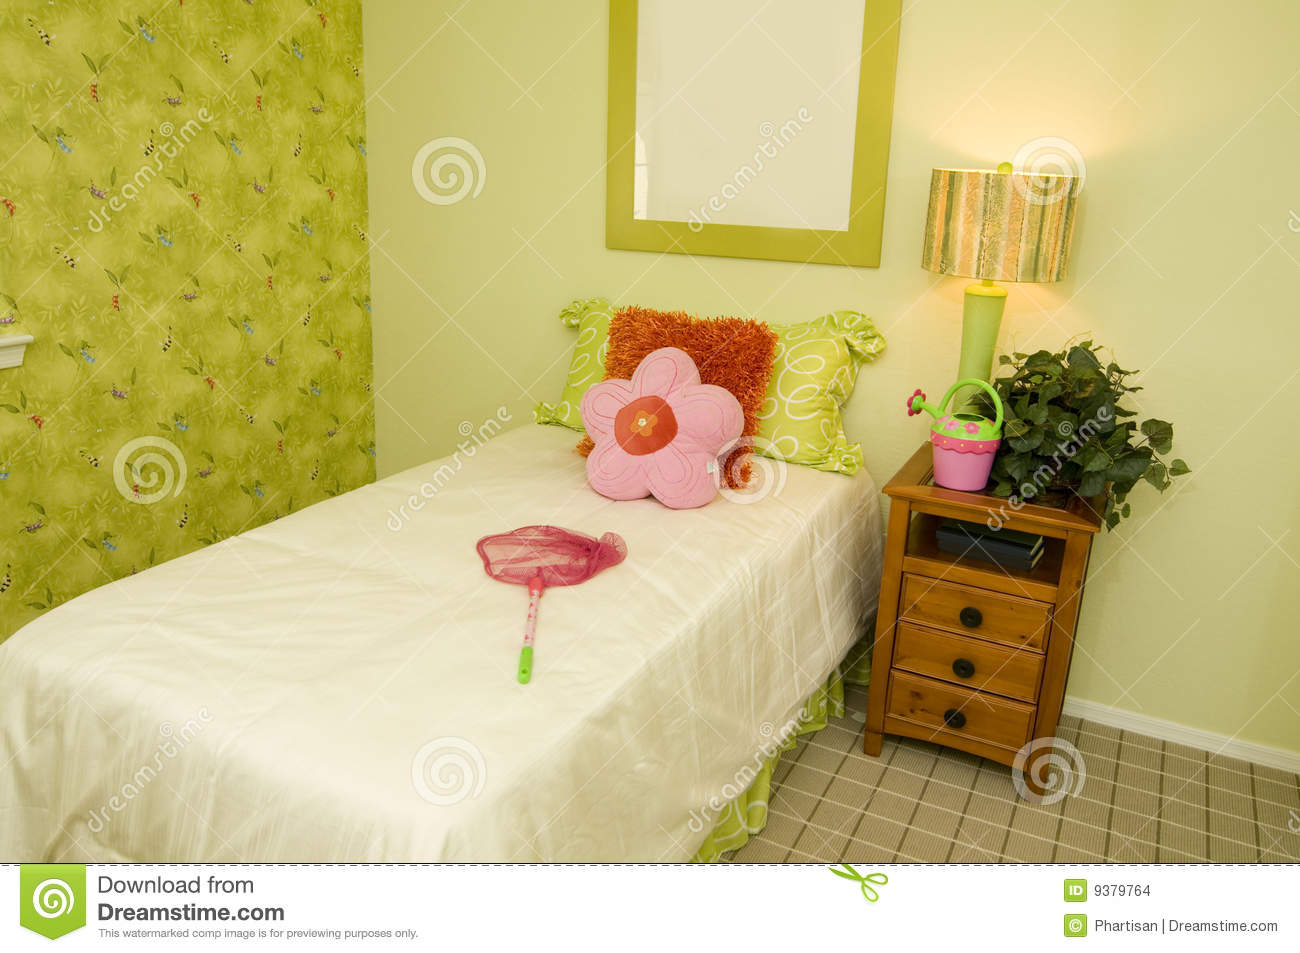 Nature themed young child's bedroom with net on bed.